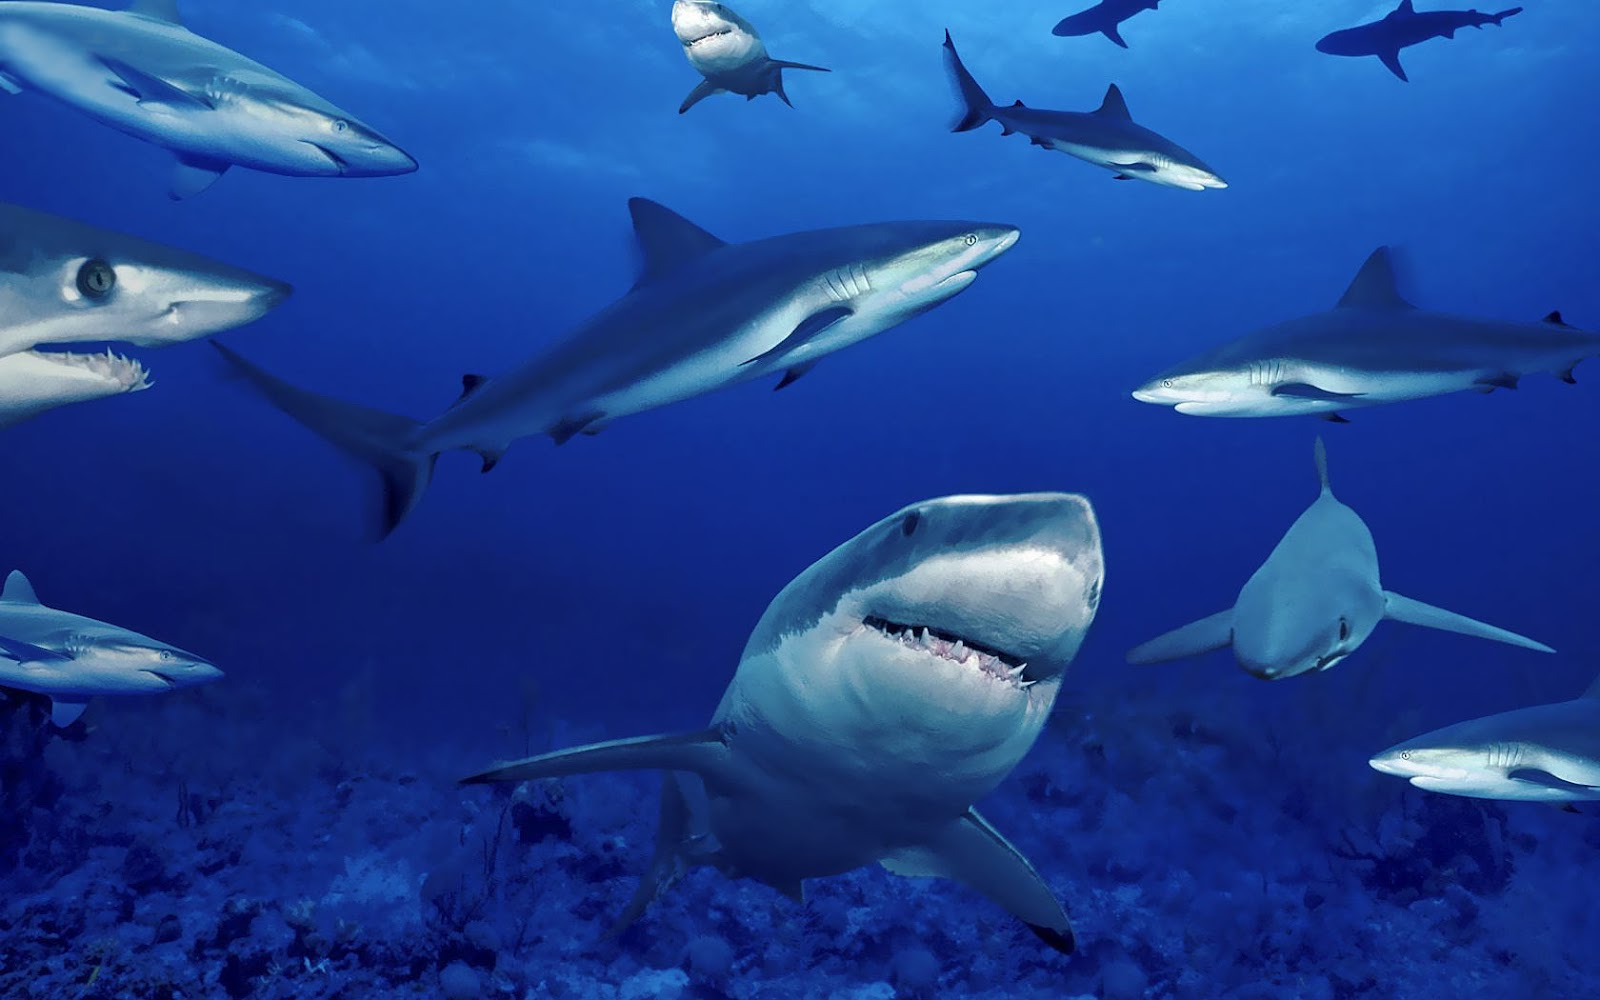 http://4.bp.blogspot.com/-Wz0CNc55sTA/UDe9Z006VSI/AAAAAAAABBU/_iLTYr10ZJU/s1600/hd-shark-wallpaper-with-a-group-of-dangerous-sharks-swimming-on-the-bottom-of-the-sea-hd-sharks-wallpapers-backgrounds-pictures-photos.jpg.jpg